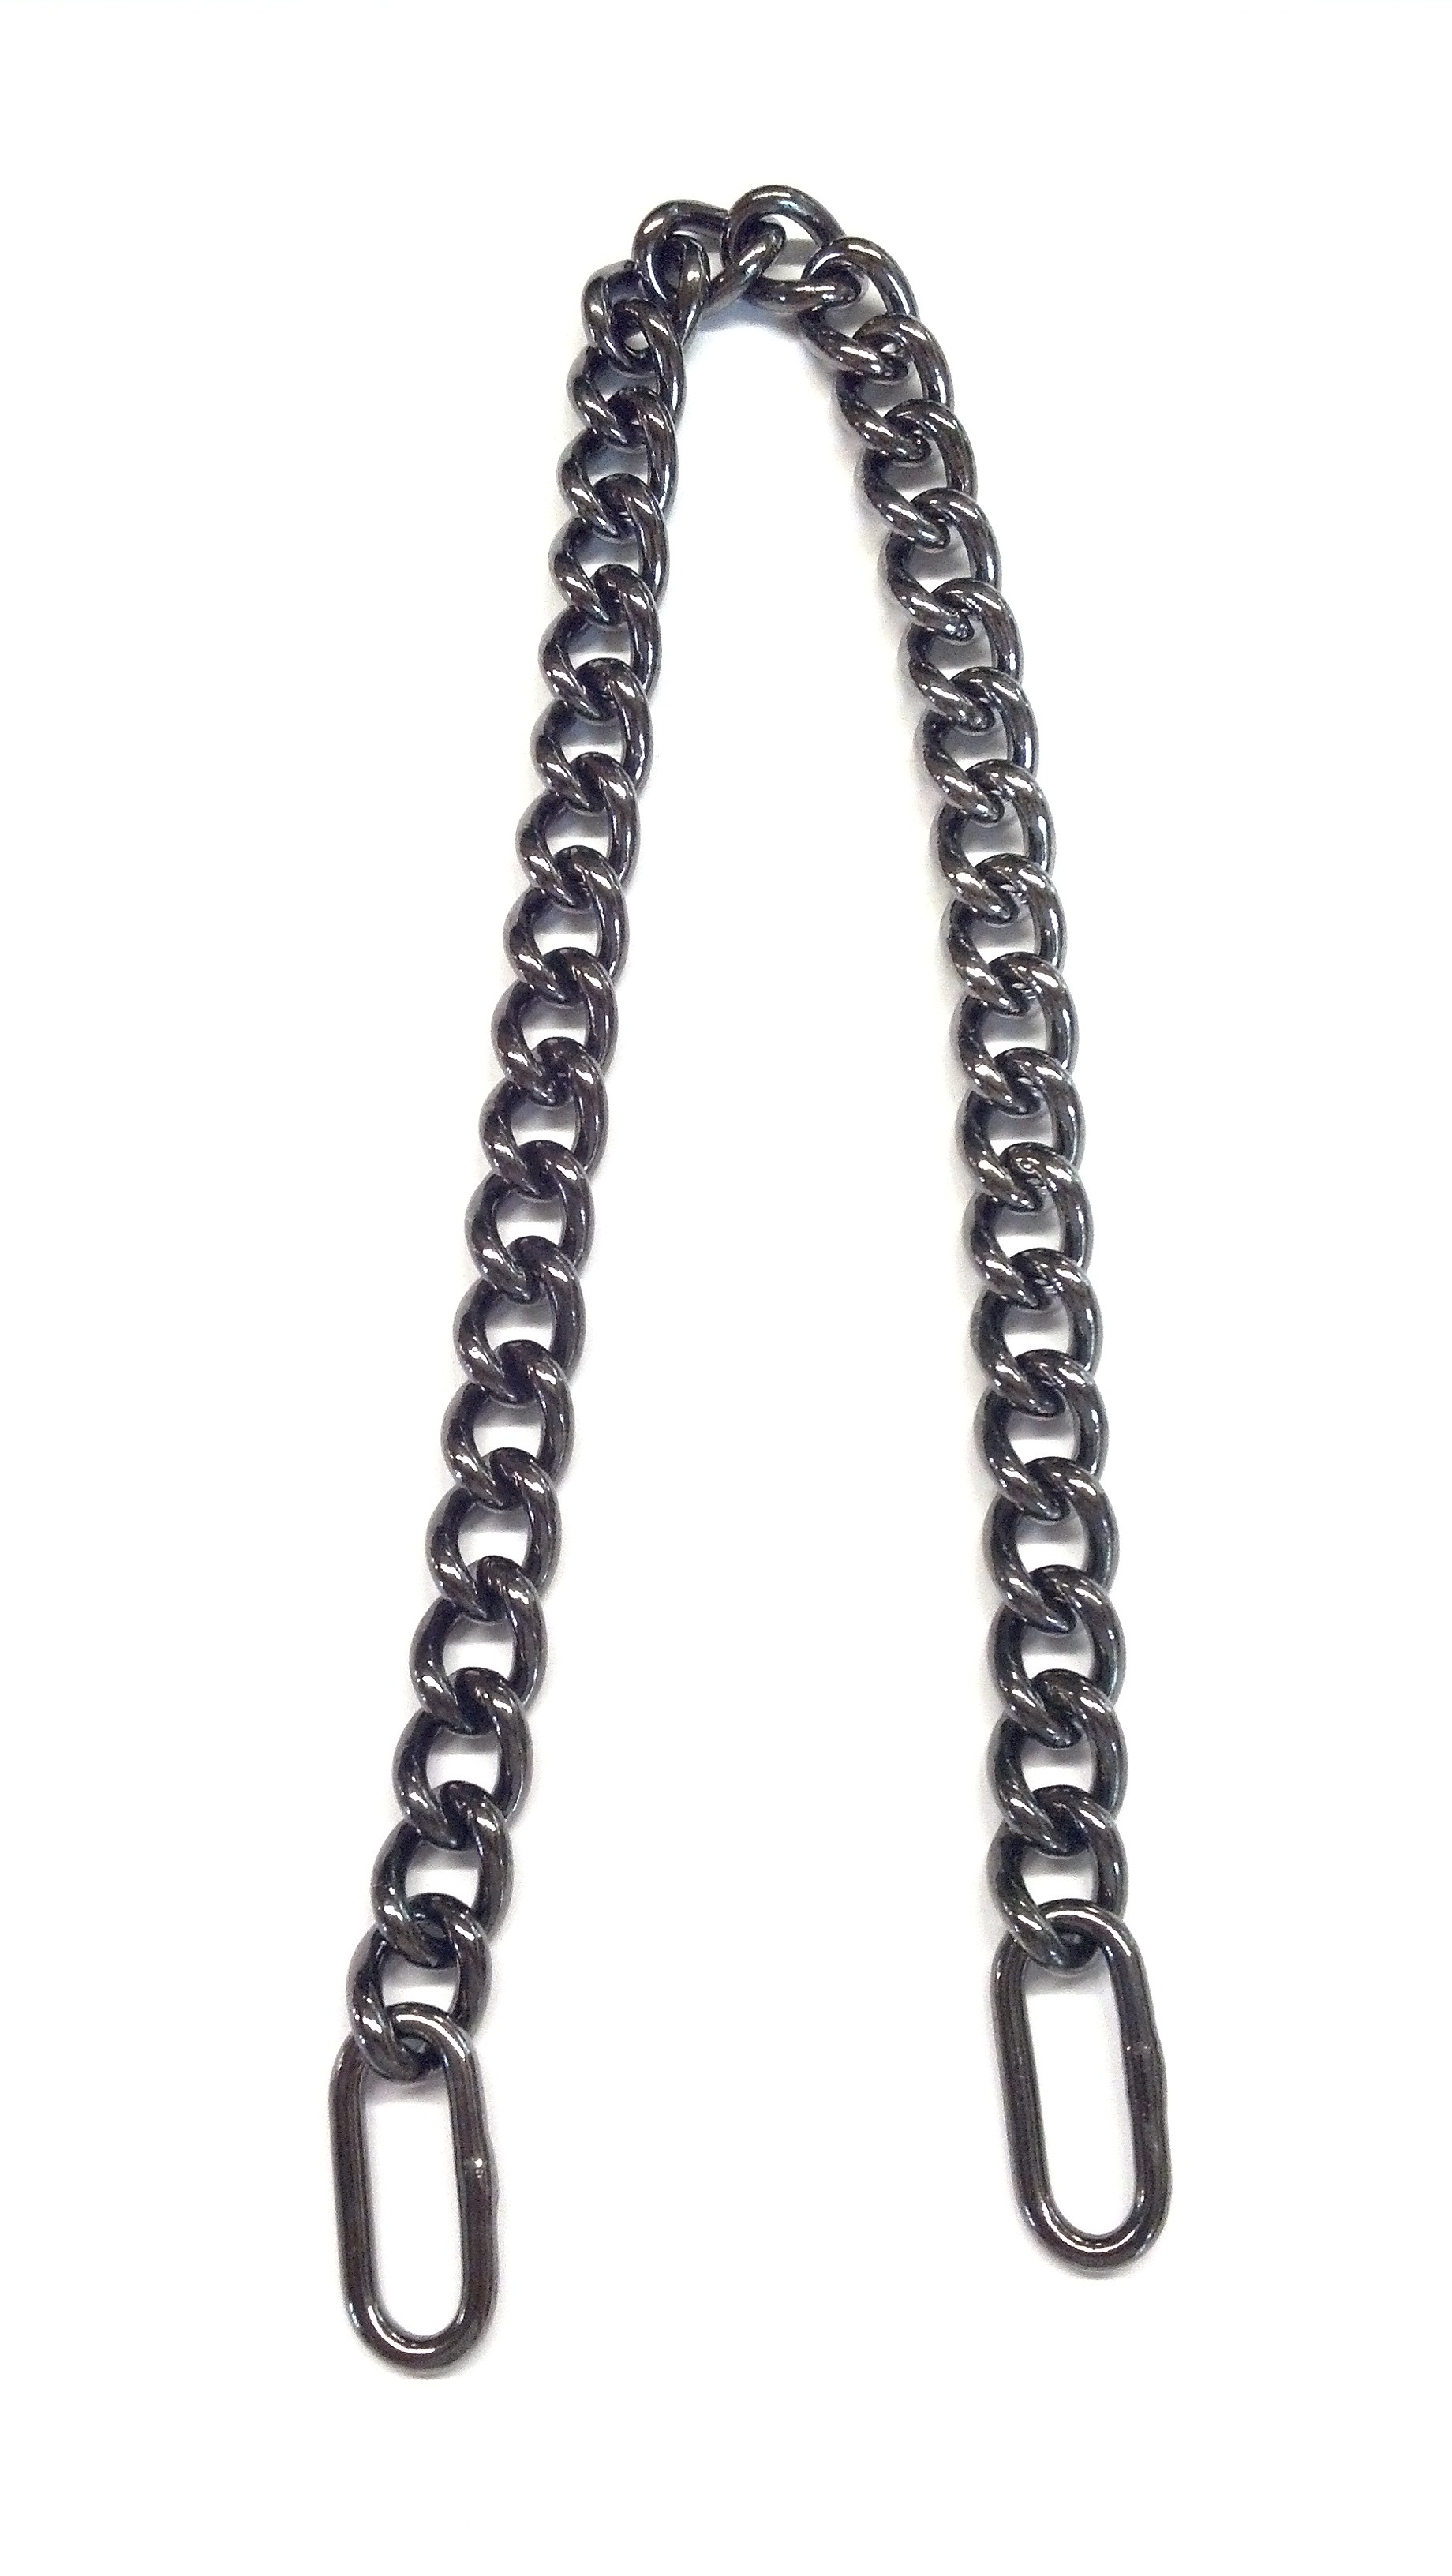 4.0 World's Finest Beautiful Black Chrome Plated Solid Brass Show Chain